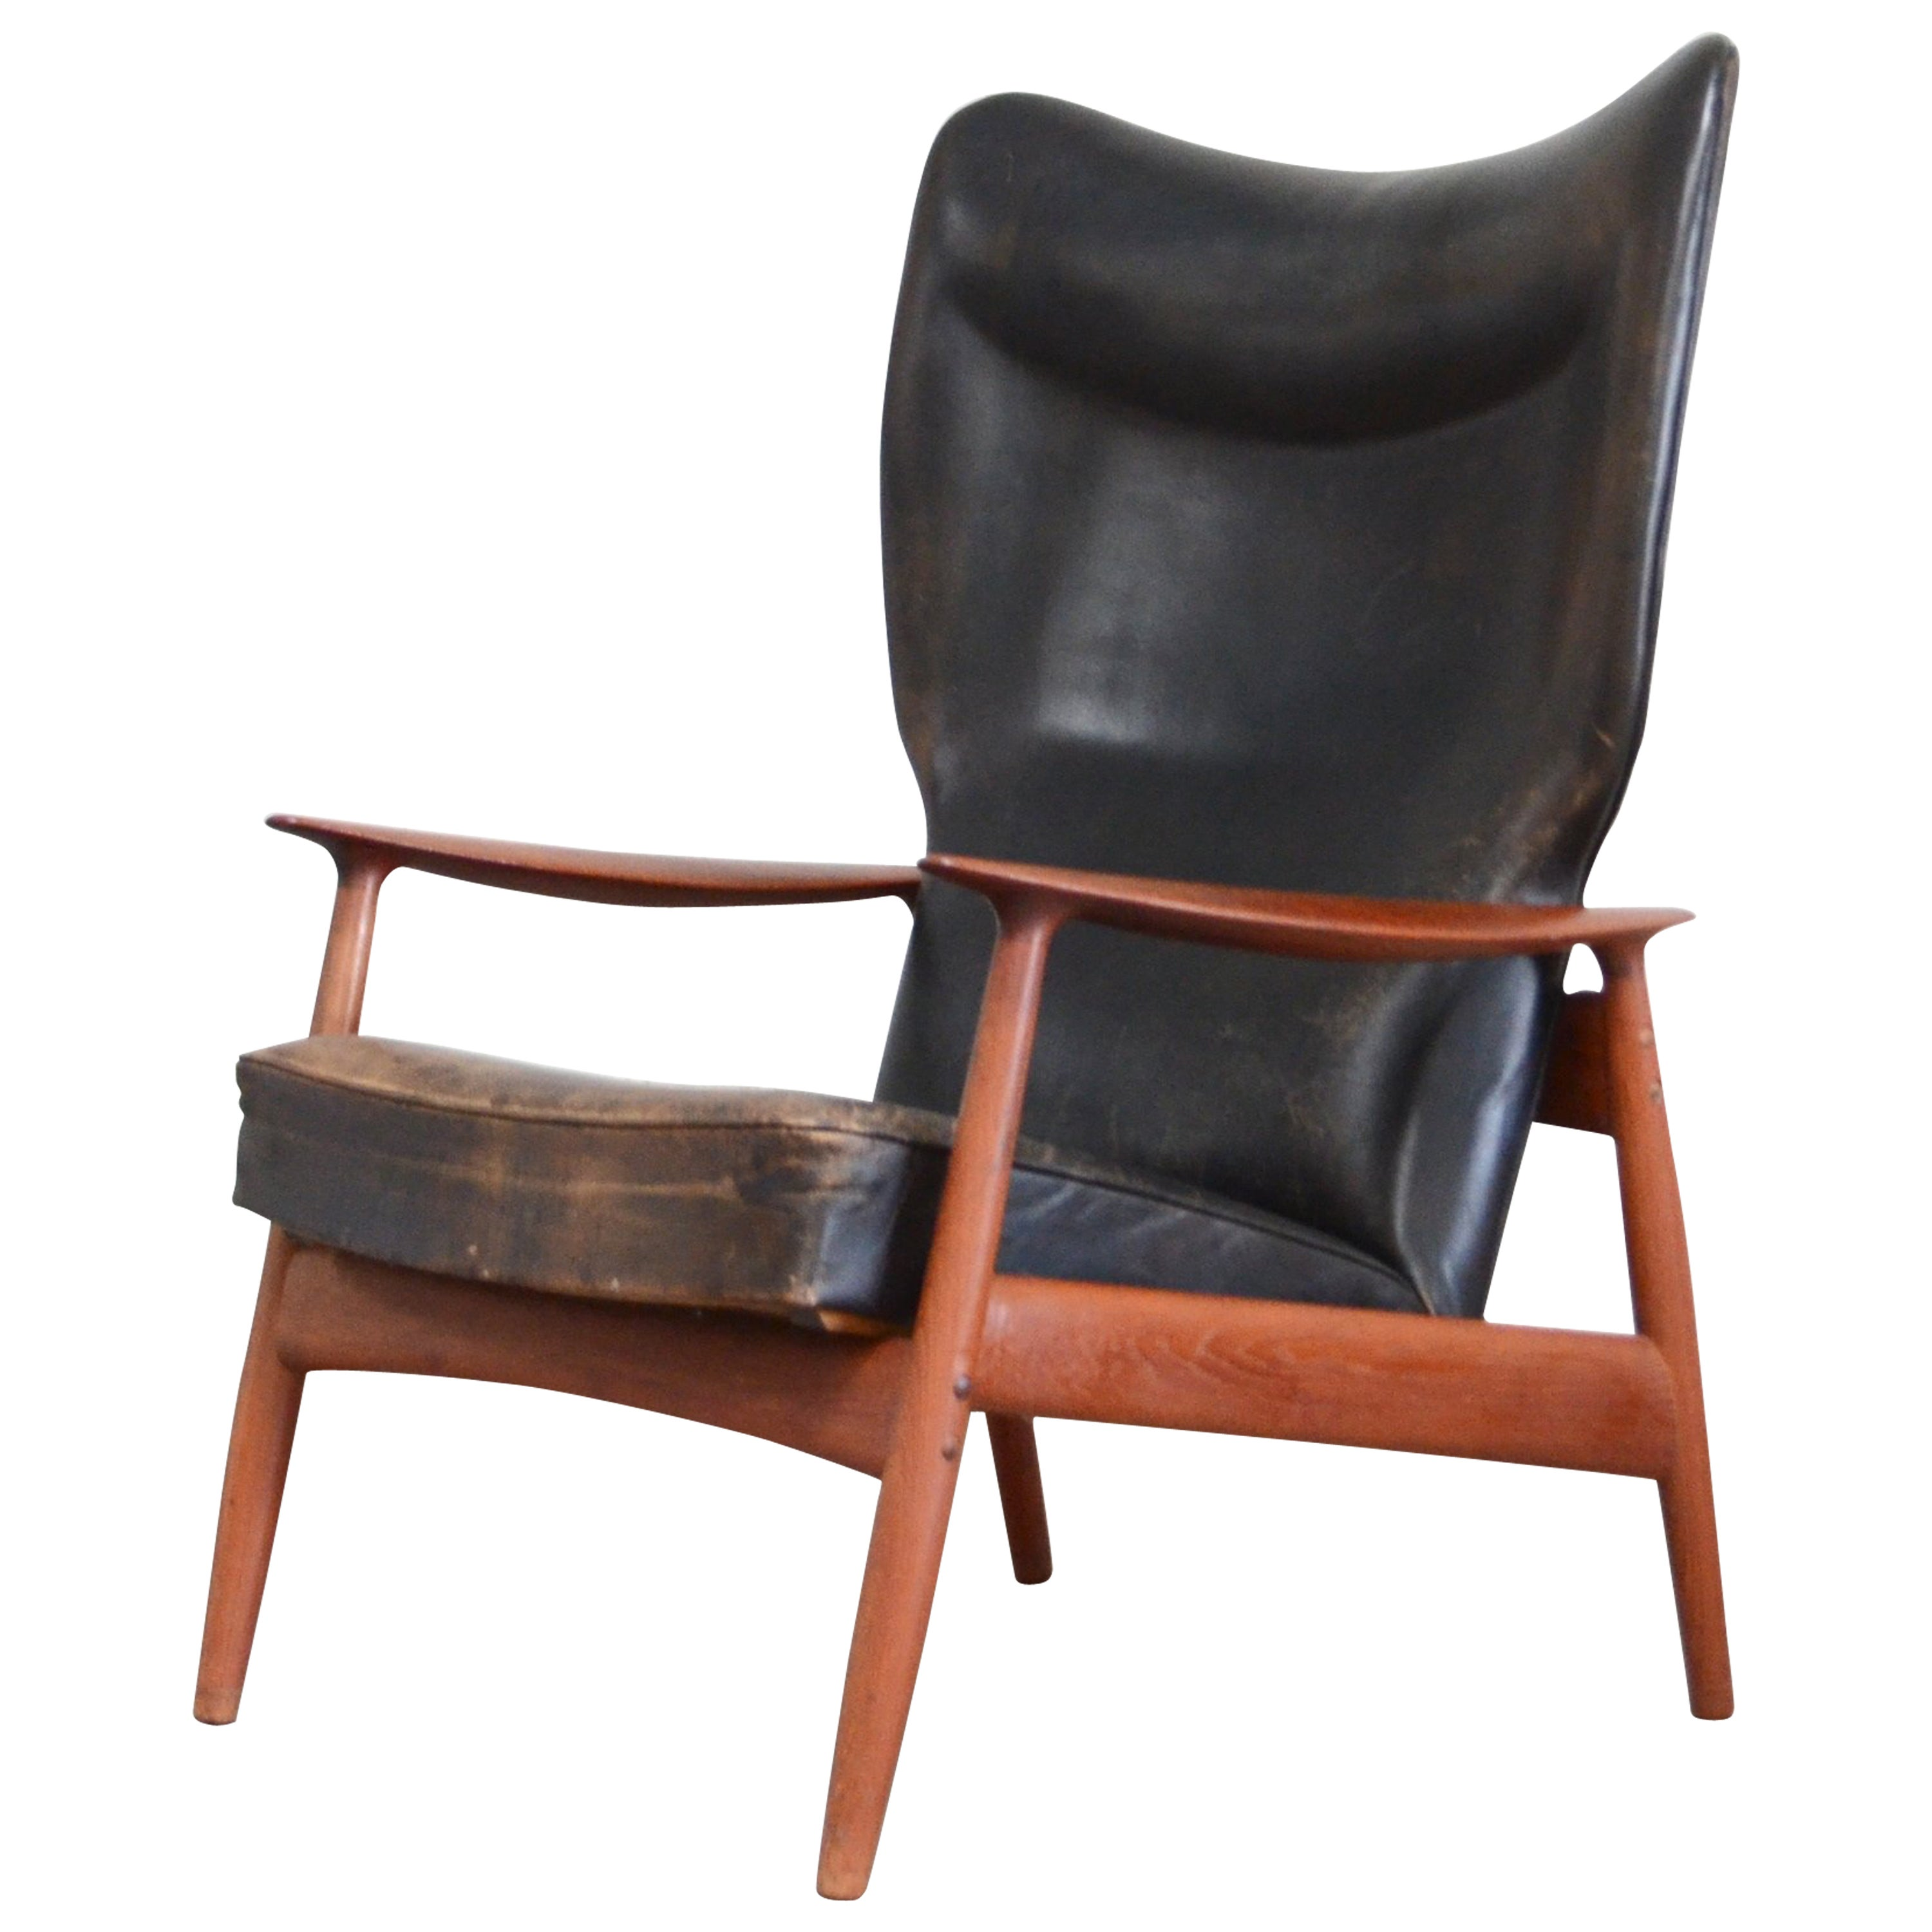 K. Rasmussen for Peter Wessel Wingback Leather Lounge Chair, 1960